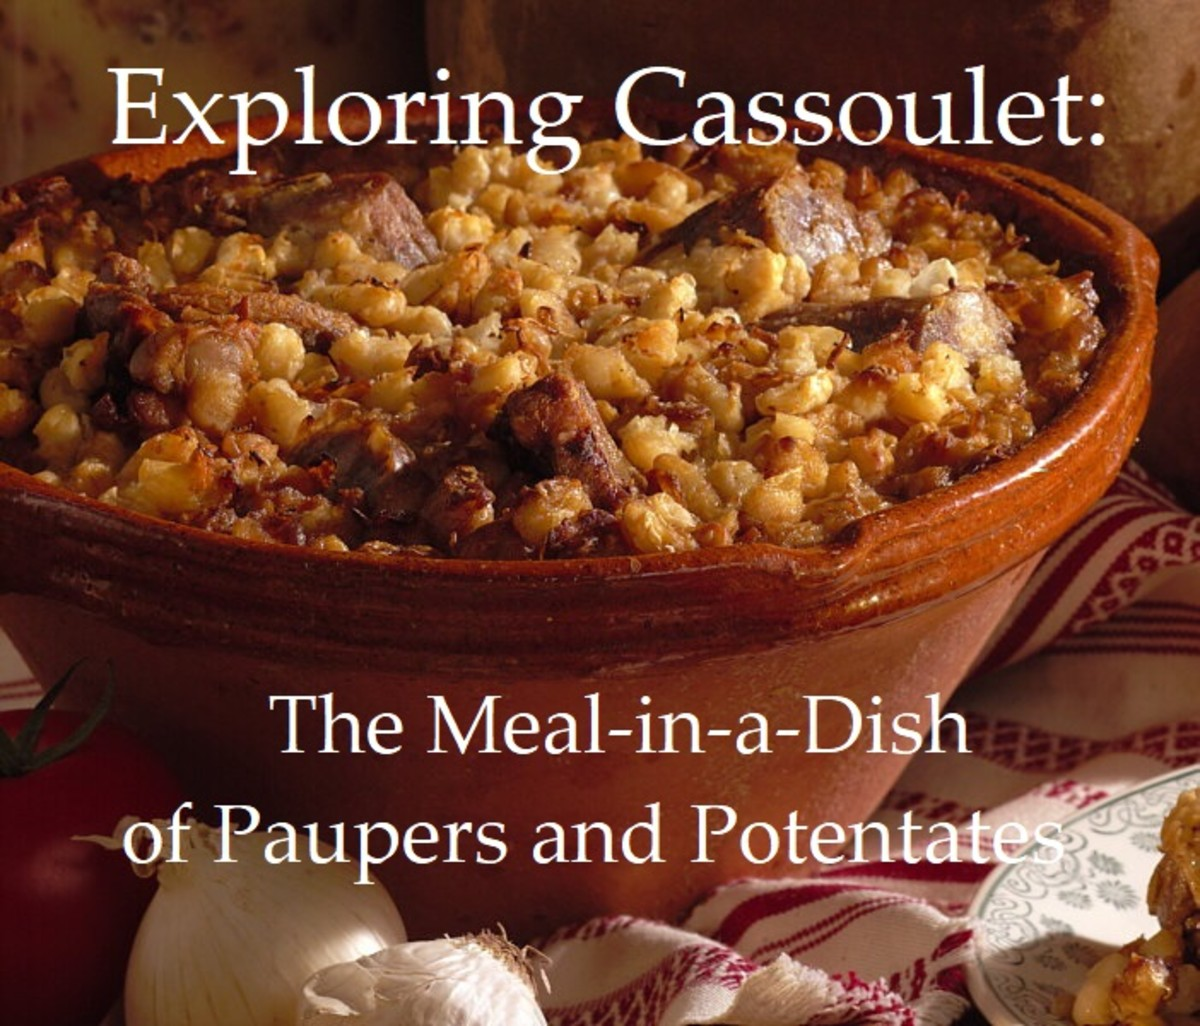 Exploring Cassoulet: The Meal-in-a-Dish of Paupers and Potentates